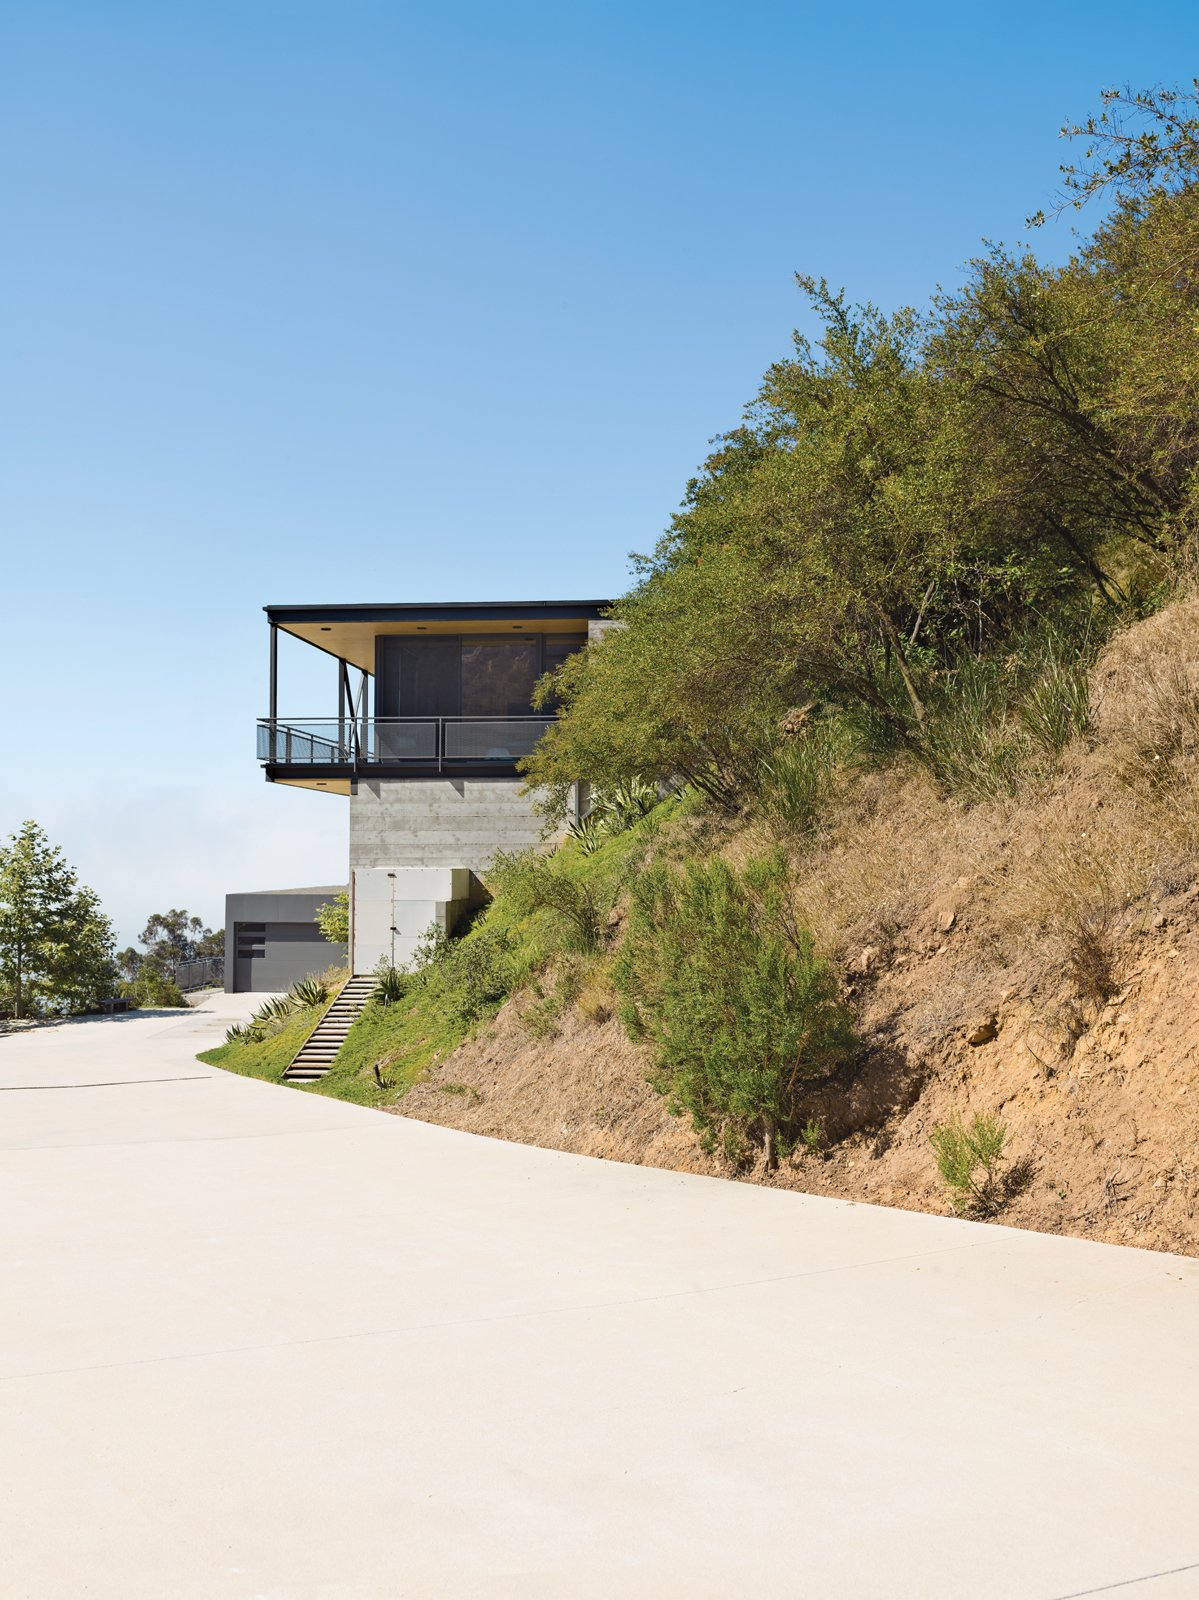 To deal with a Malibu site's sharp incline, architect Bruce Bolander set the steel, concrete, and glass house on caissons. A deep wraparound porch nearly doubles the home's living space and offers the ideal perch for outdoor dining and taking in spectacular views of the surrounding canyon. The garage serves as resident Dave Keffer's home office. Tagged: Exterior, House, Concrete Siding Material, and Flat RoofLine.  Photo 2 of 9 in This High-Flying Home Tackles a Sharp Slope